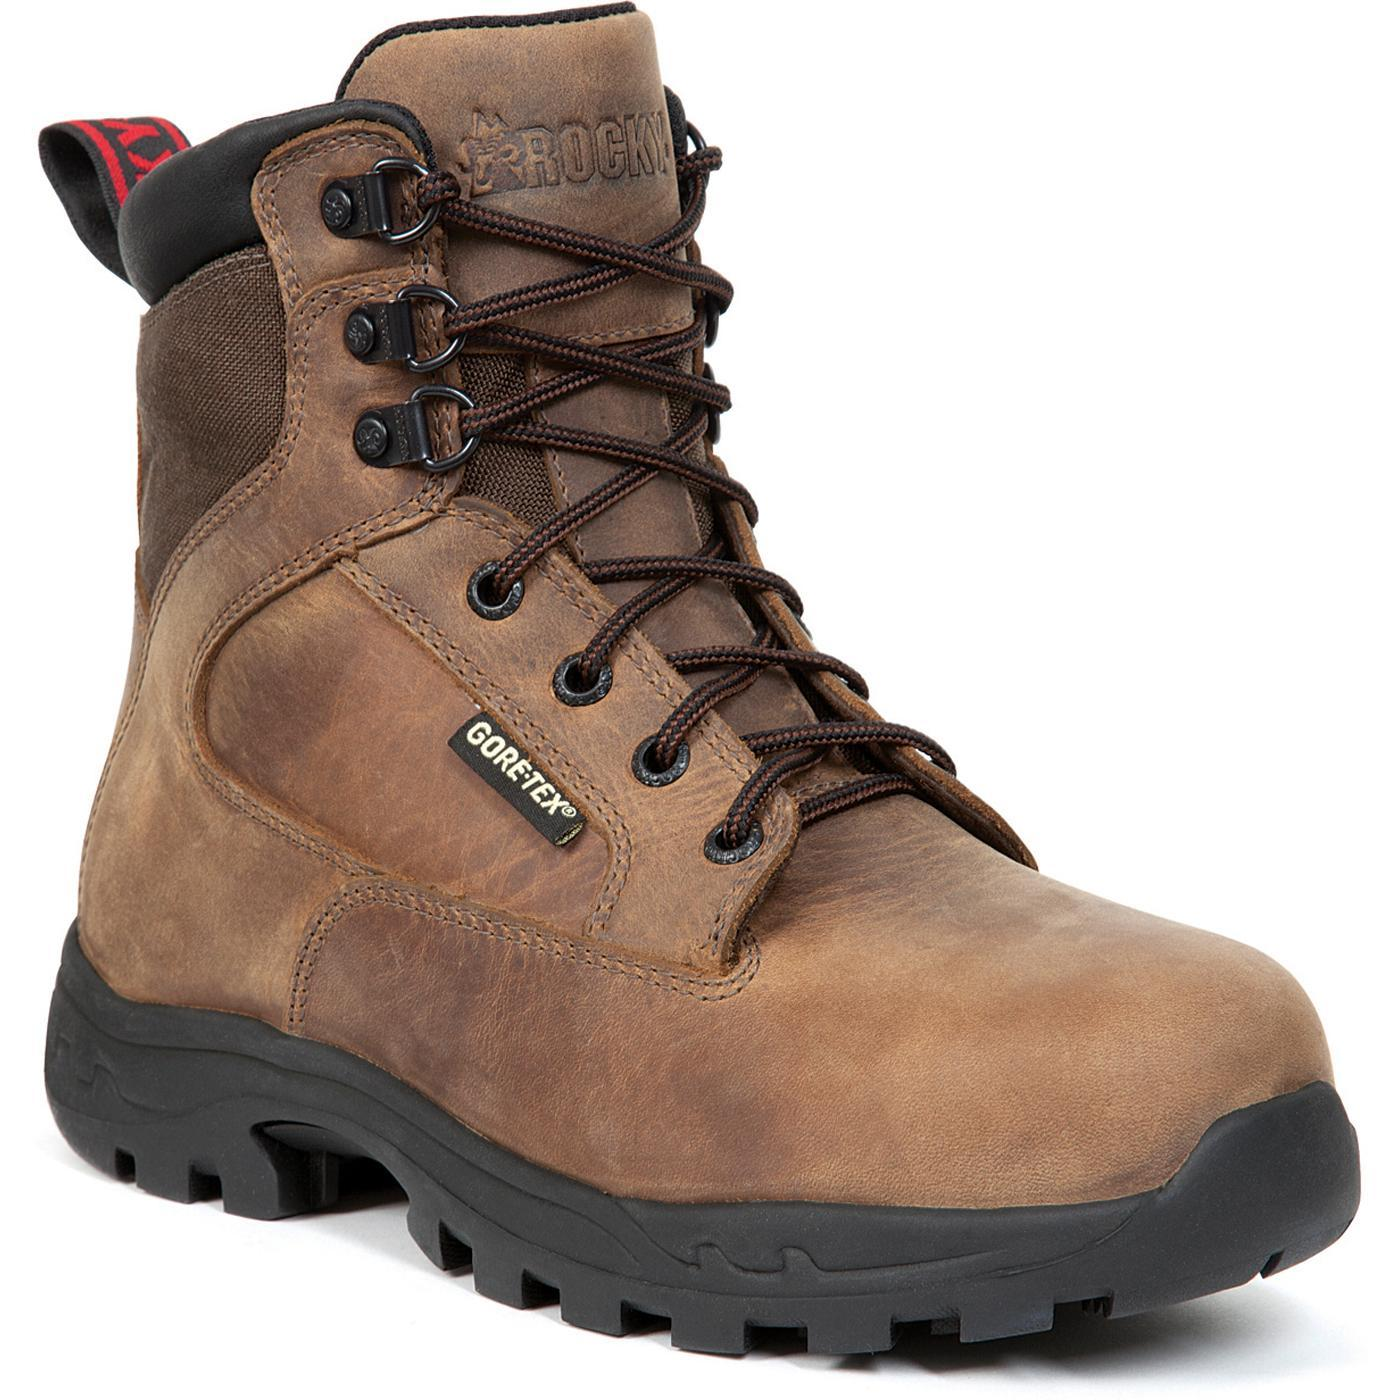 Rocky ProLight Women's GORE-TEX®Insulated Work Boots - Style #4524